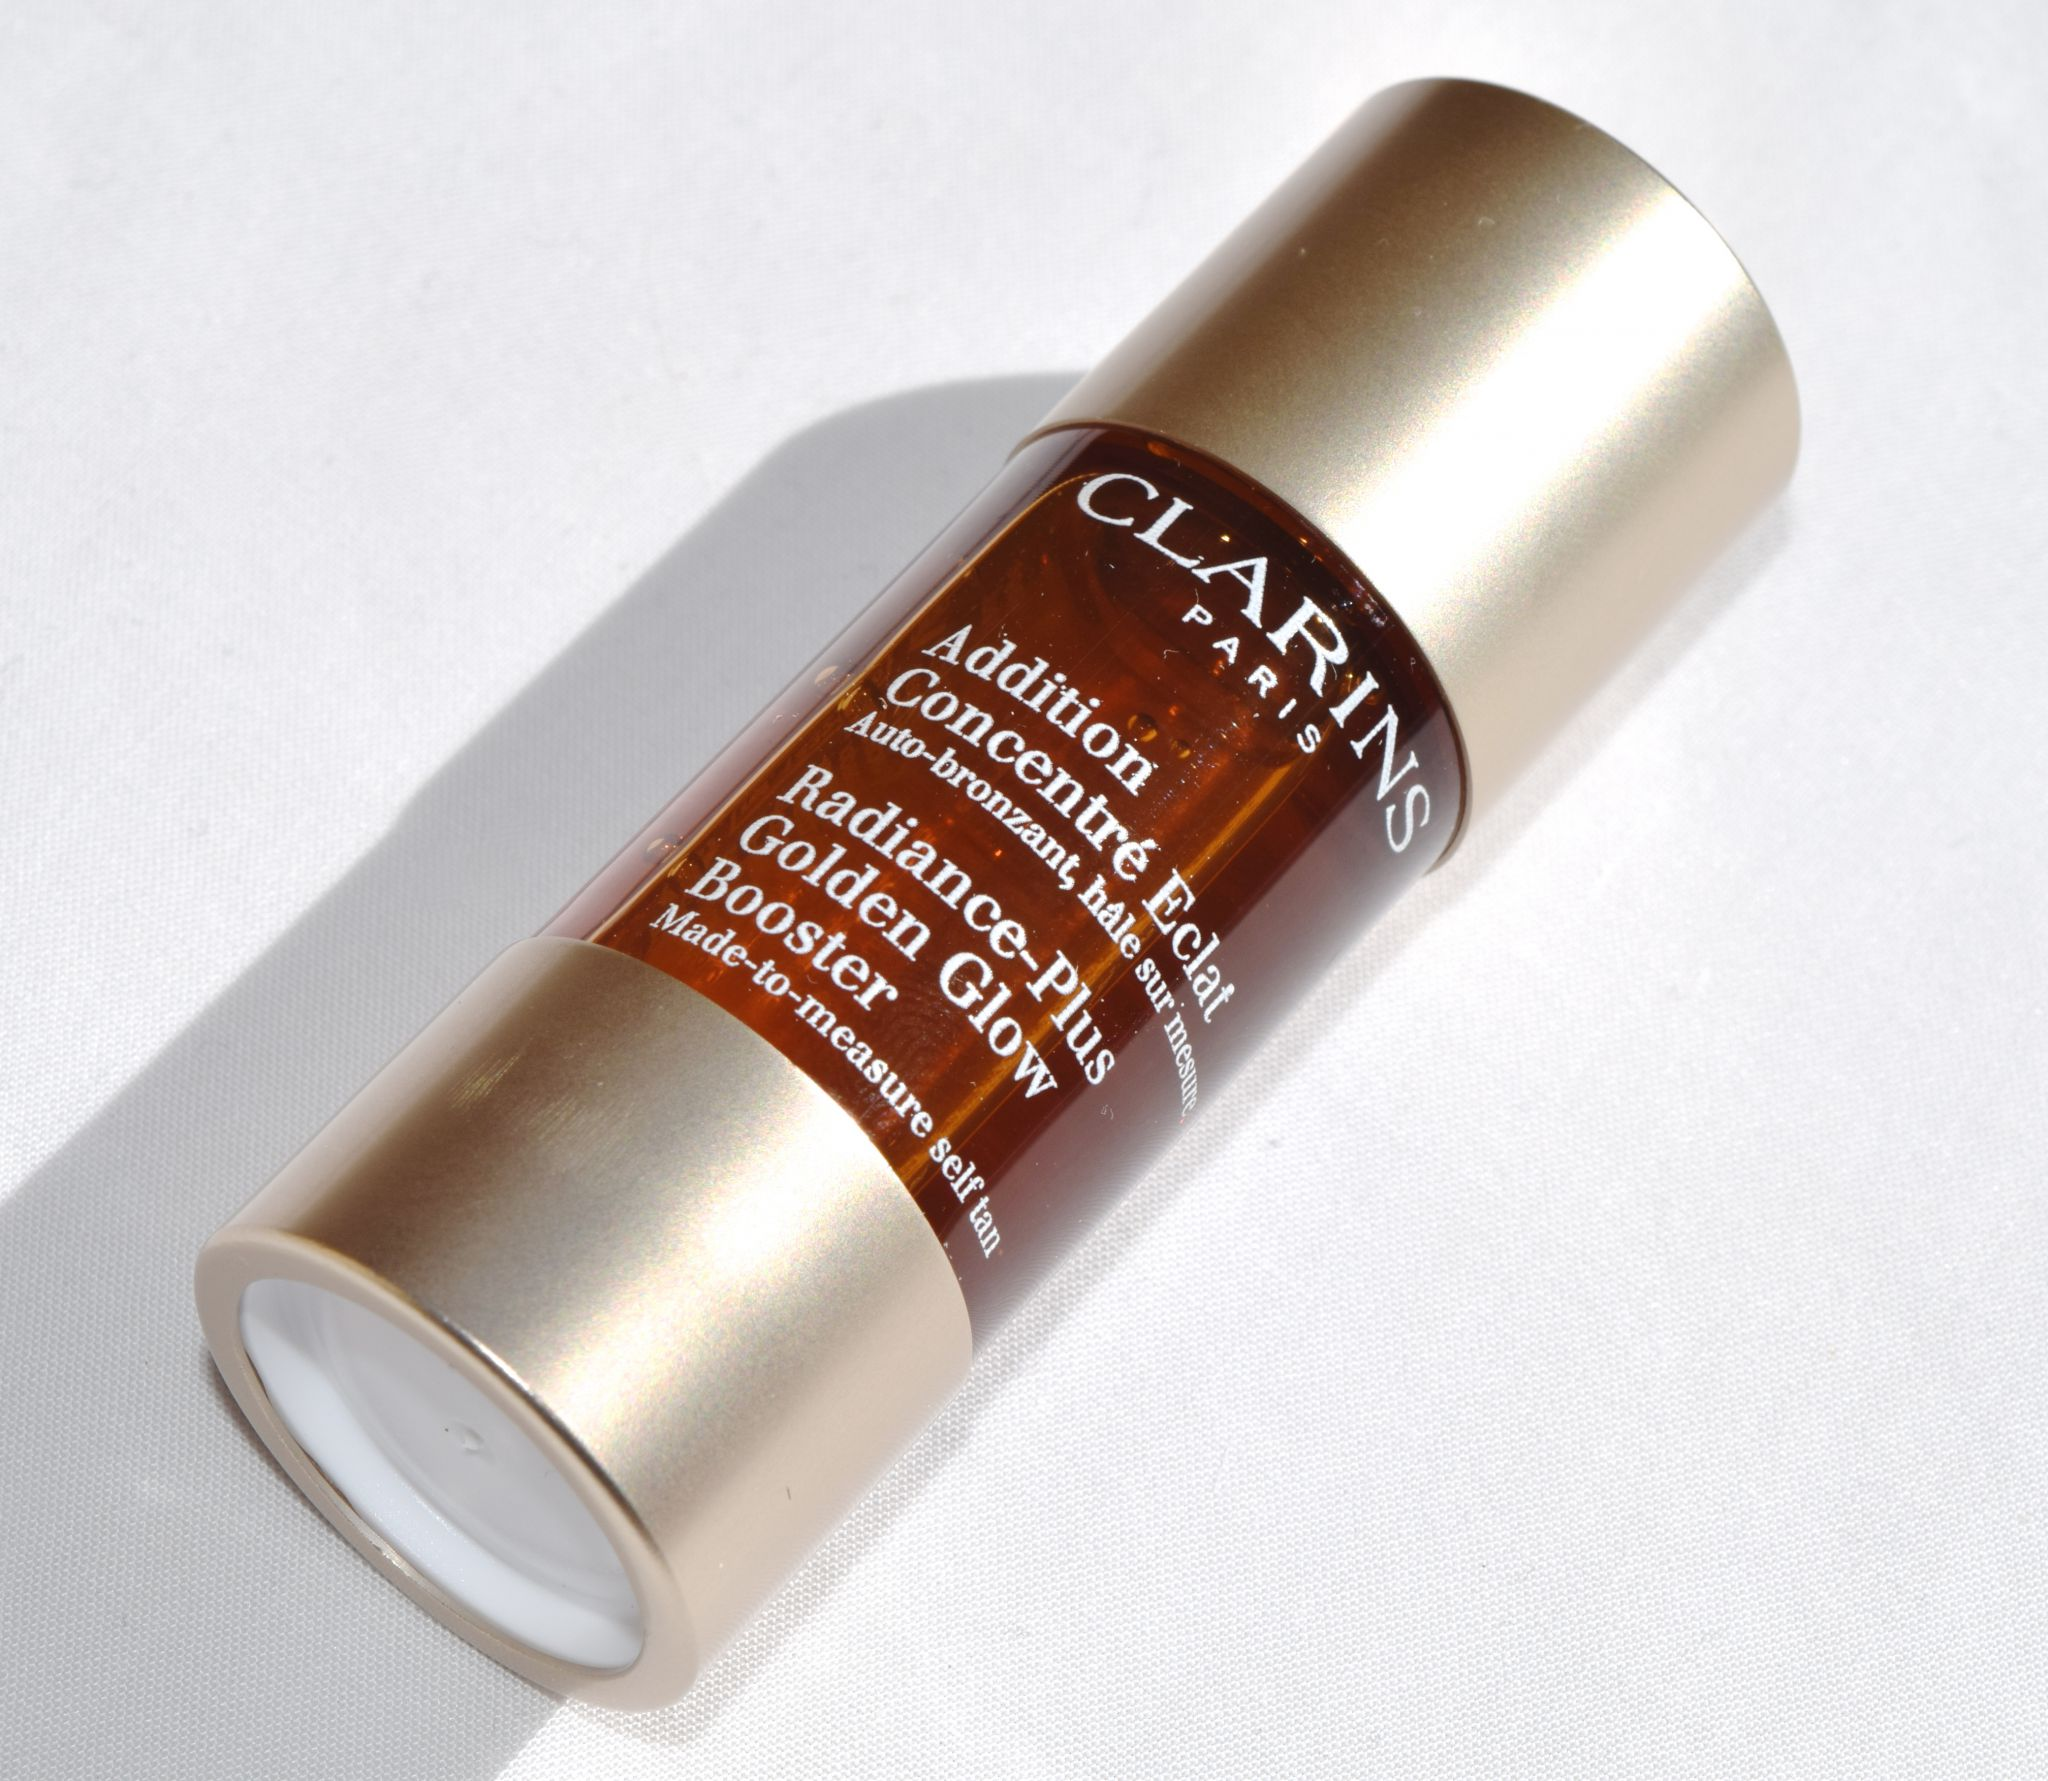 Clarins Radiance-Plus Golden Glow Booster2